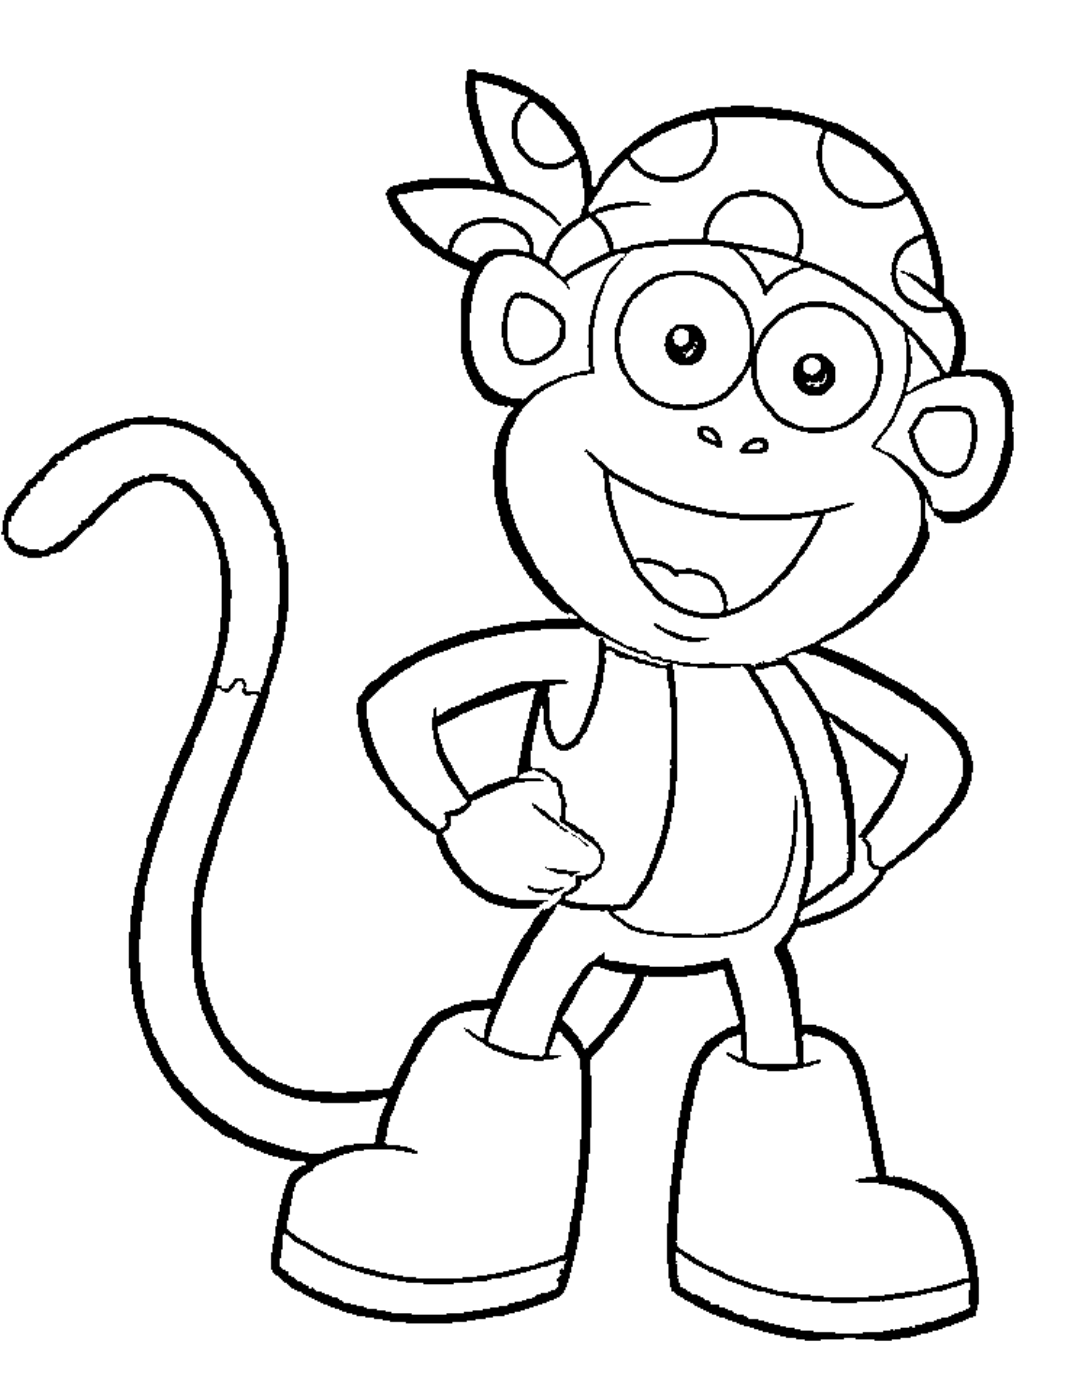 colouring pages of cartoon characters cartoon network coloring pages download and print for free pages of colouring characters cartoon